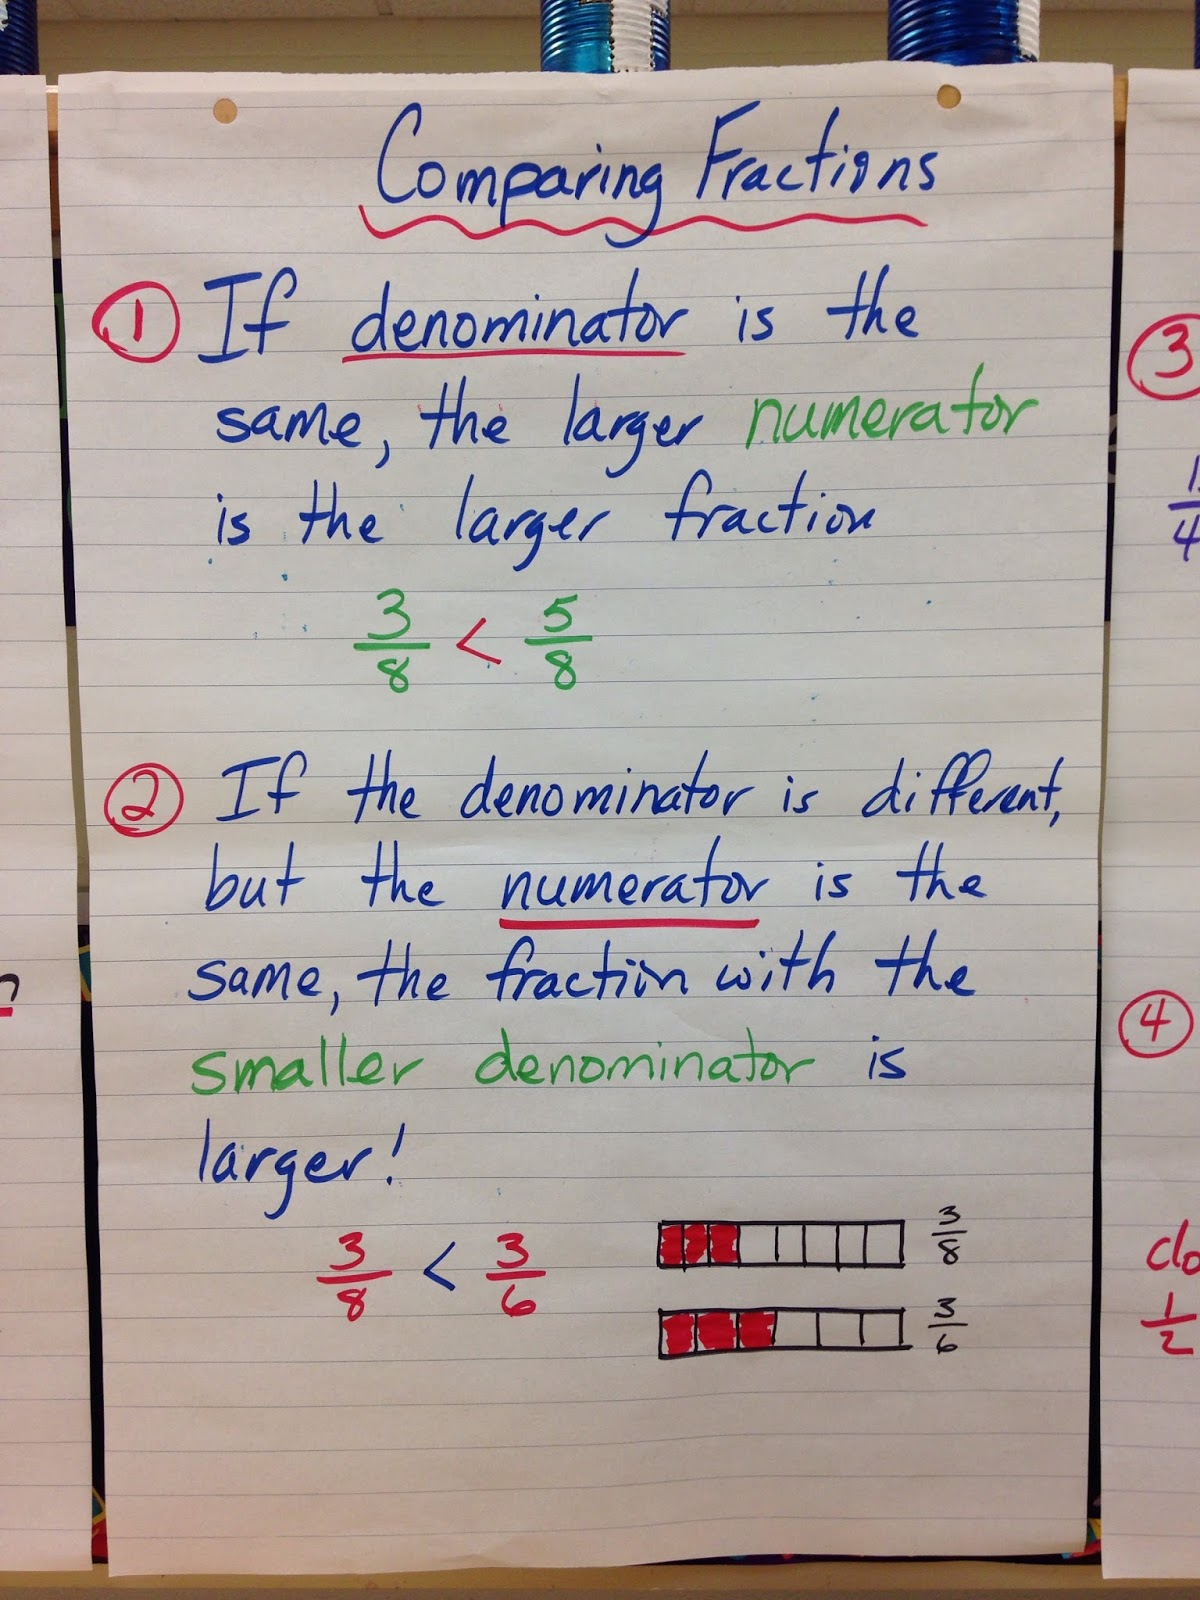 Mr Pouliot S Classroom Blog Mixed Numbers Amp Comparing